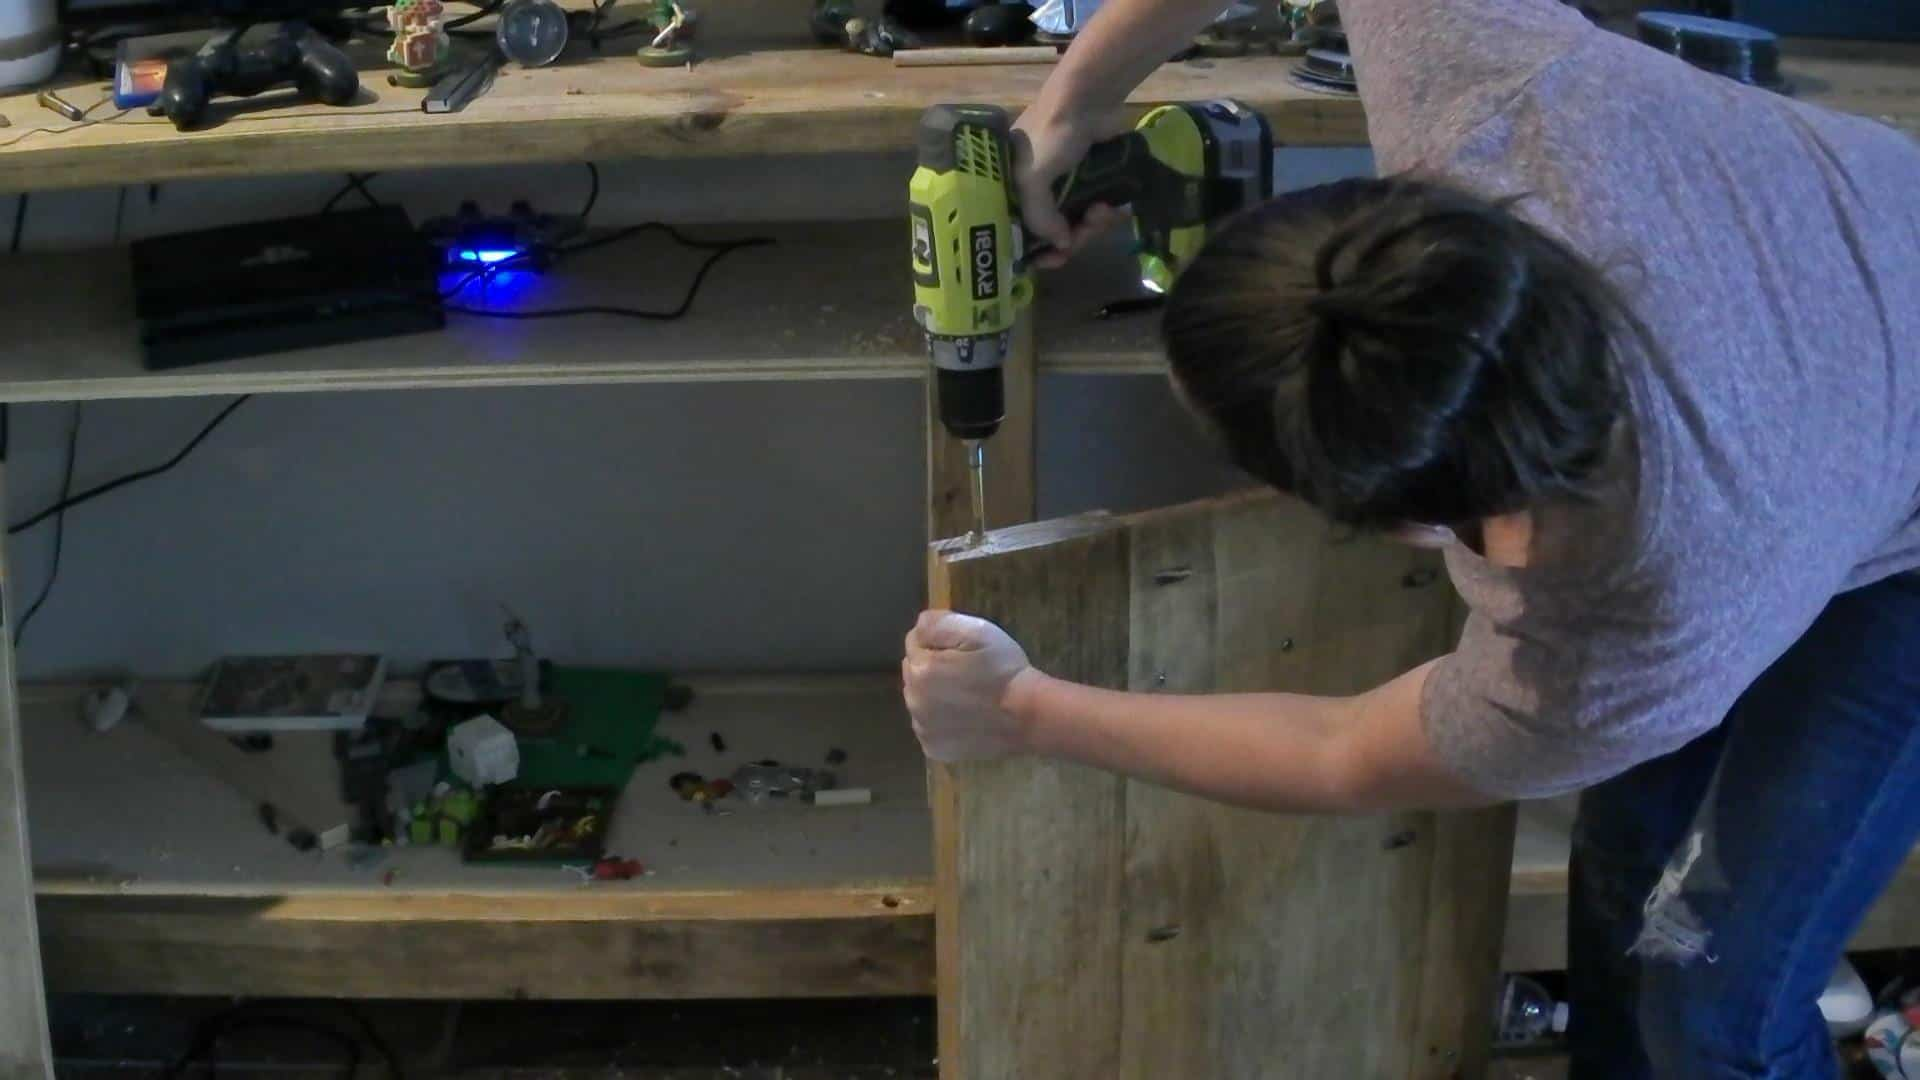 DIY Hinges - drilling the holes for the dowel rods